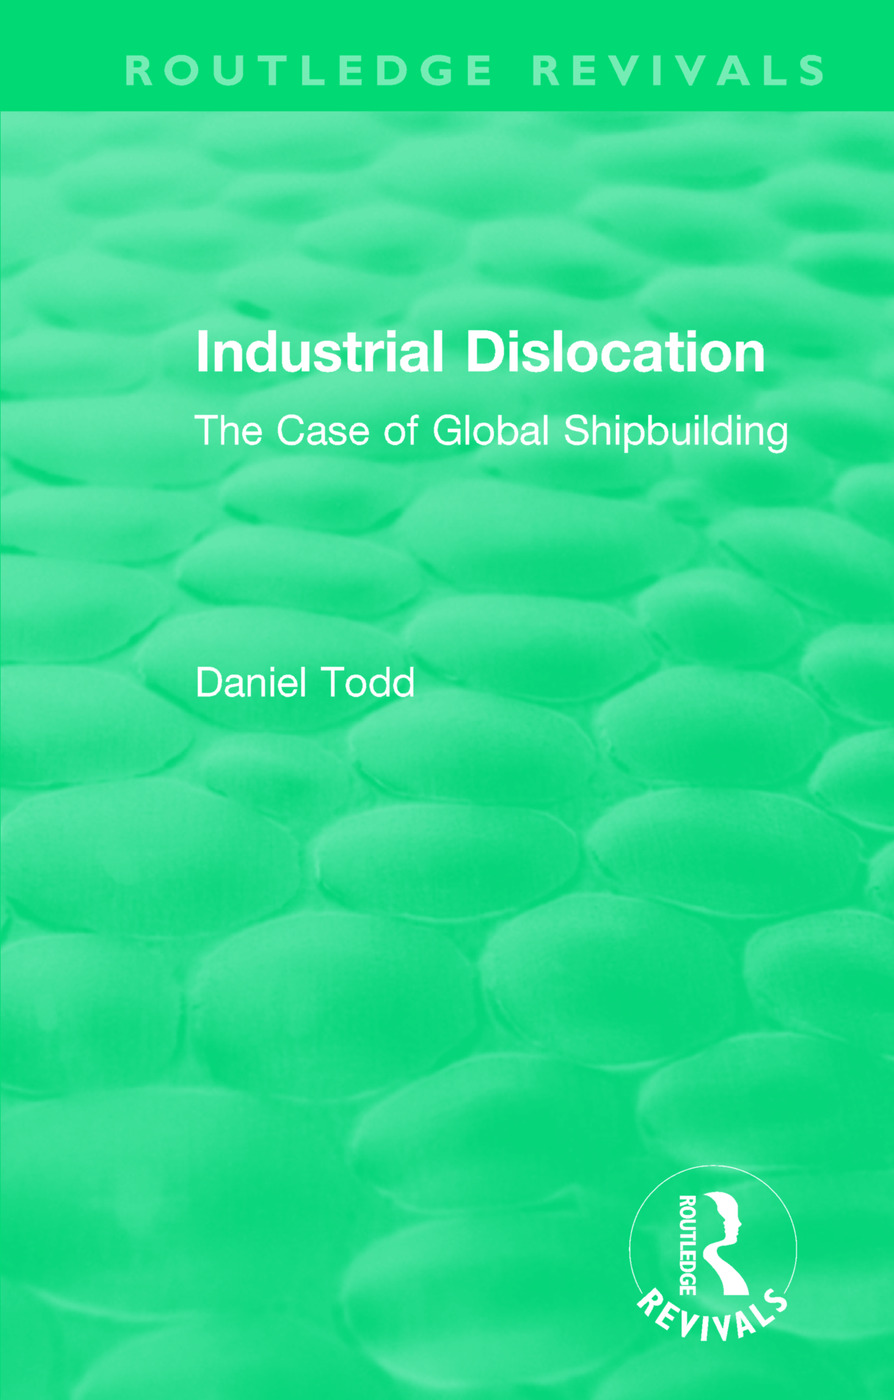 Routledge Revivals: Industrial Dislocation (1991): The Case of Global Shipbuilding book cover